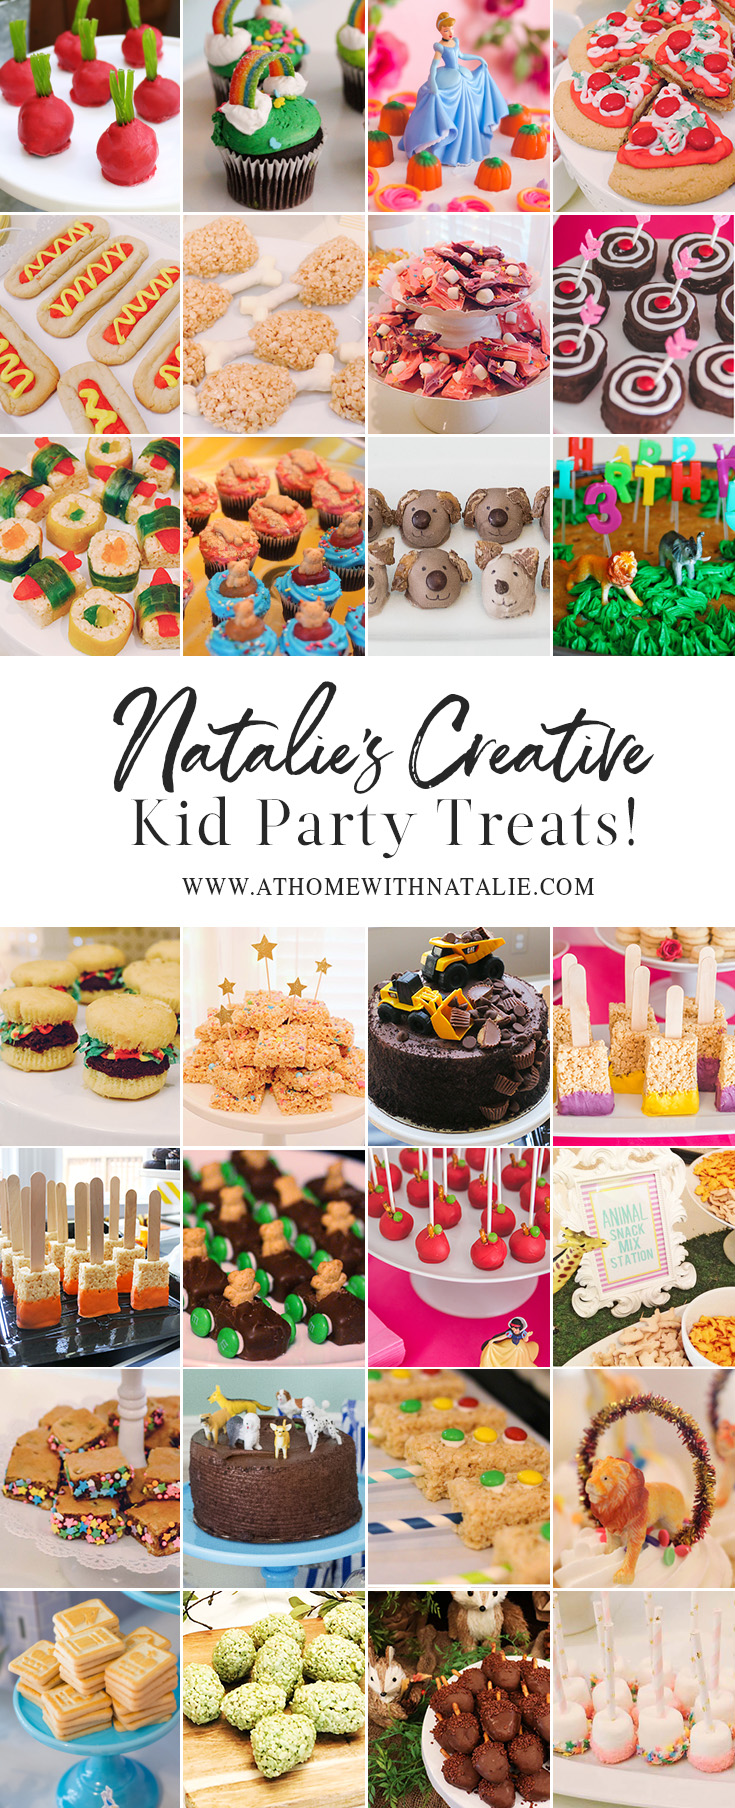 One Of My Favorite Parts About Throwing Kids Parties Is The Dessert Table I Enjoy Getting Creative With Treats And Today M Sharing Some